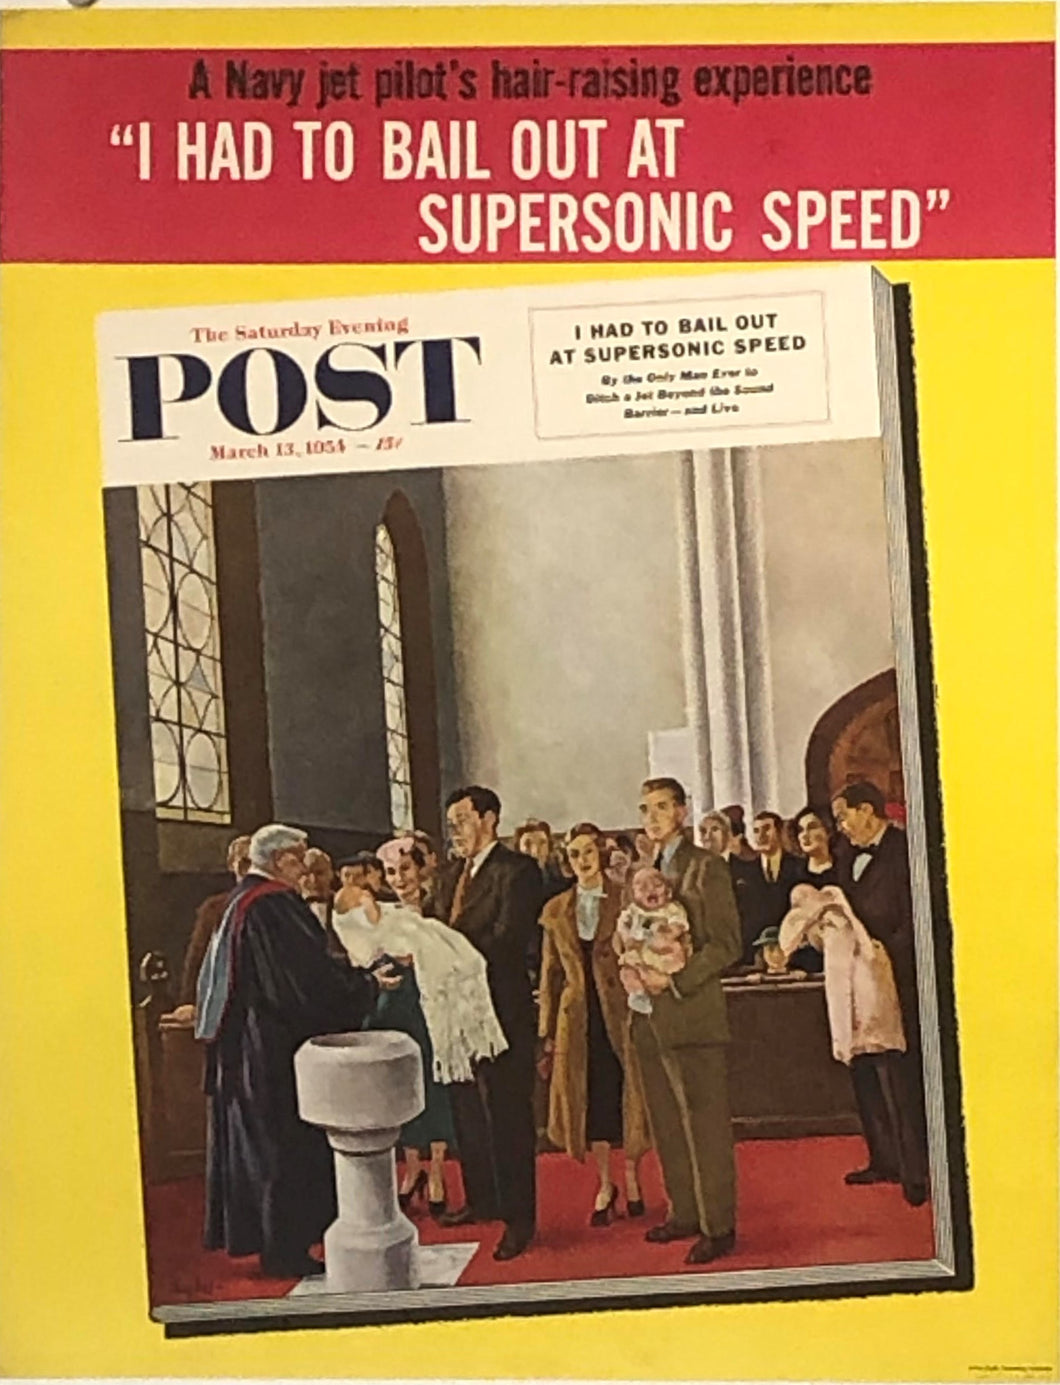 Saturday Evening Post (03/13/1954)